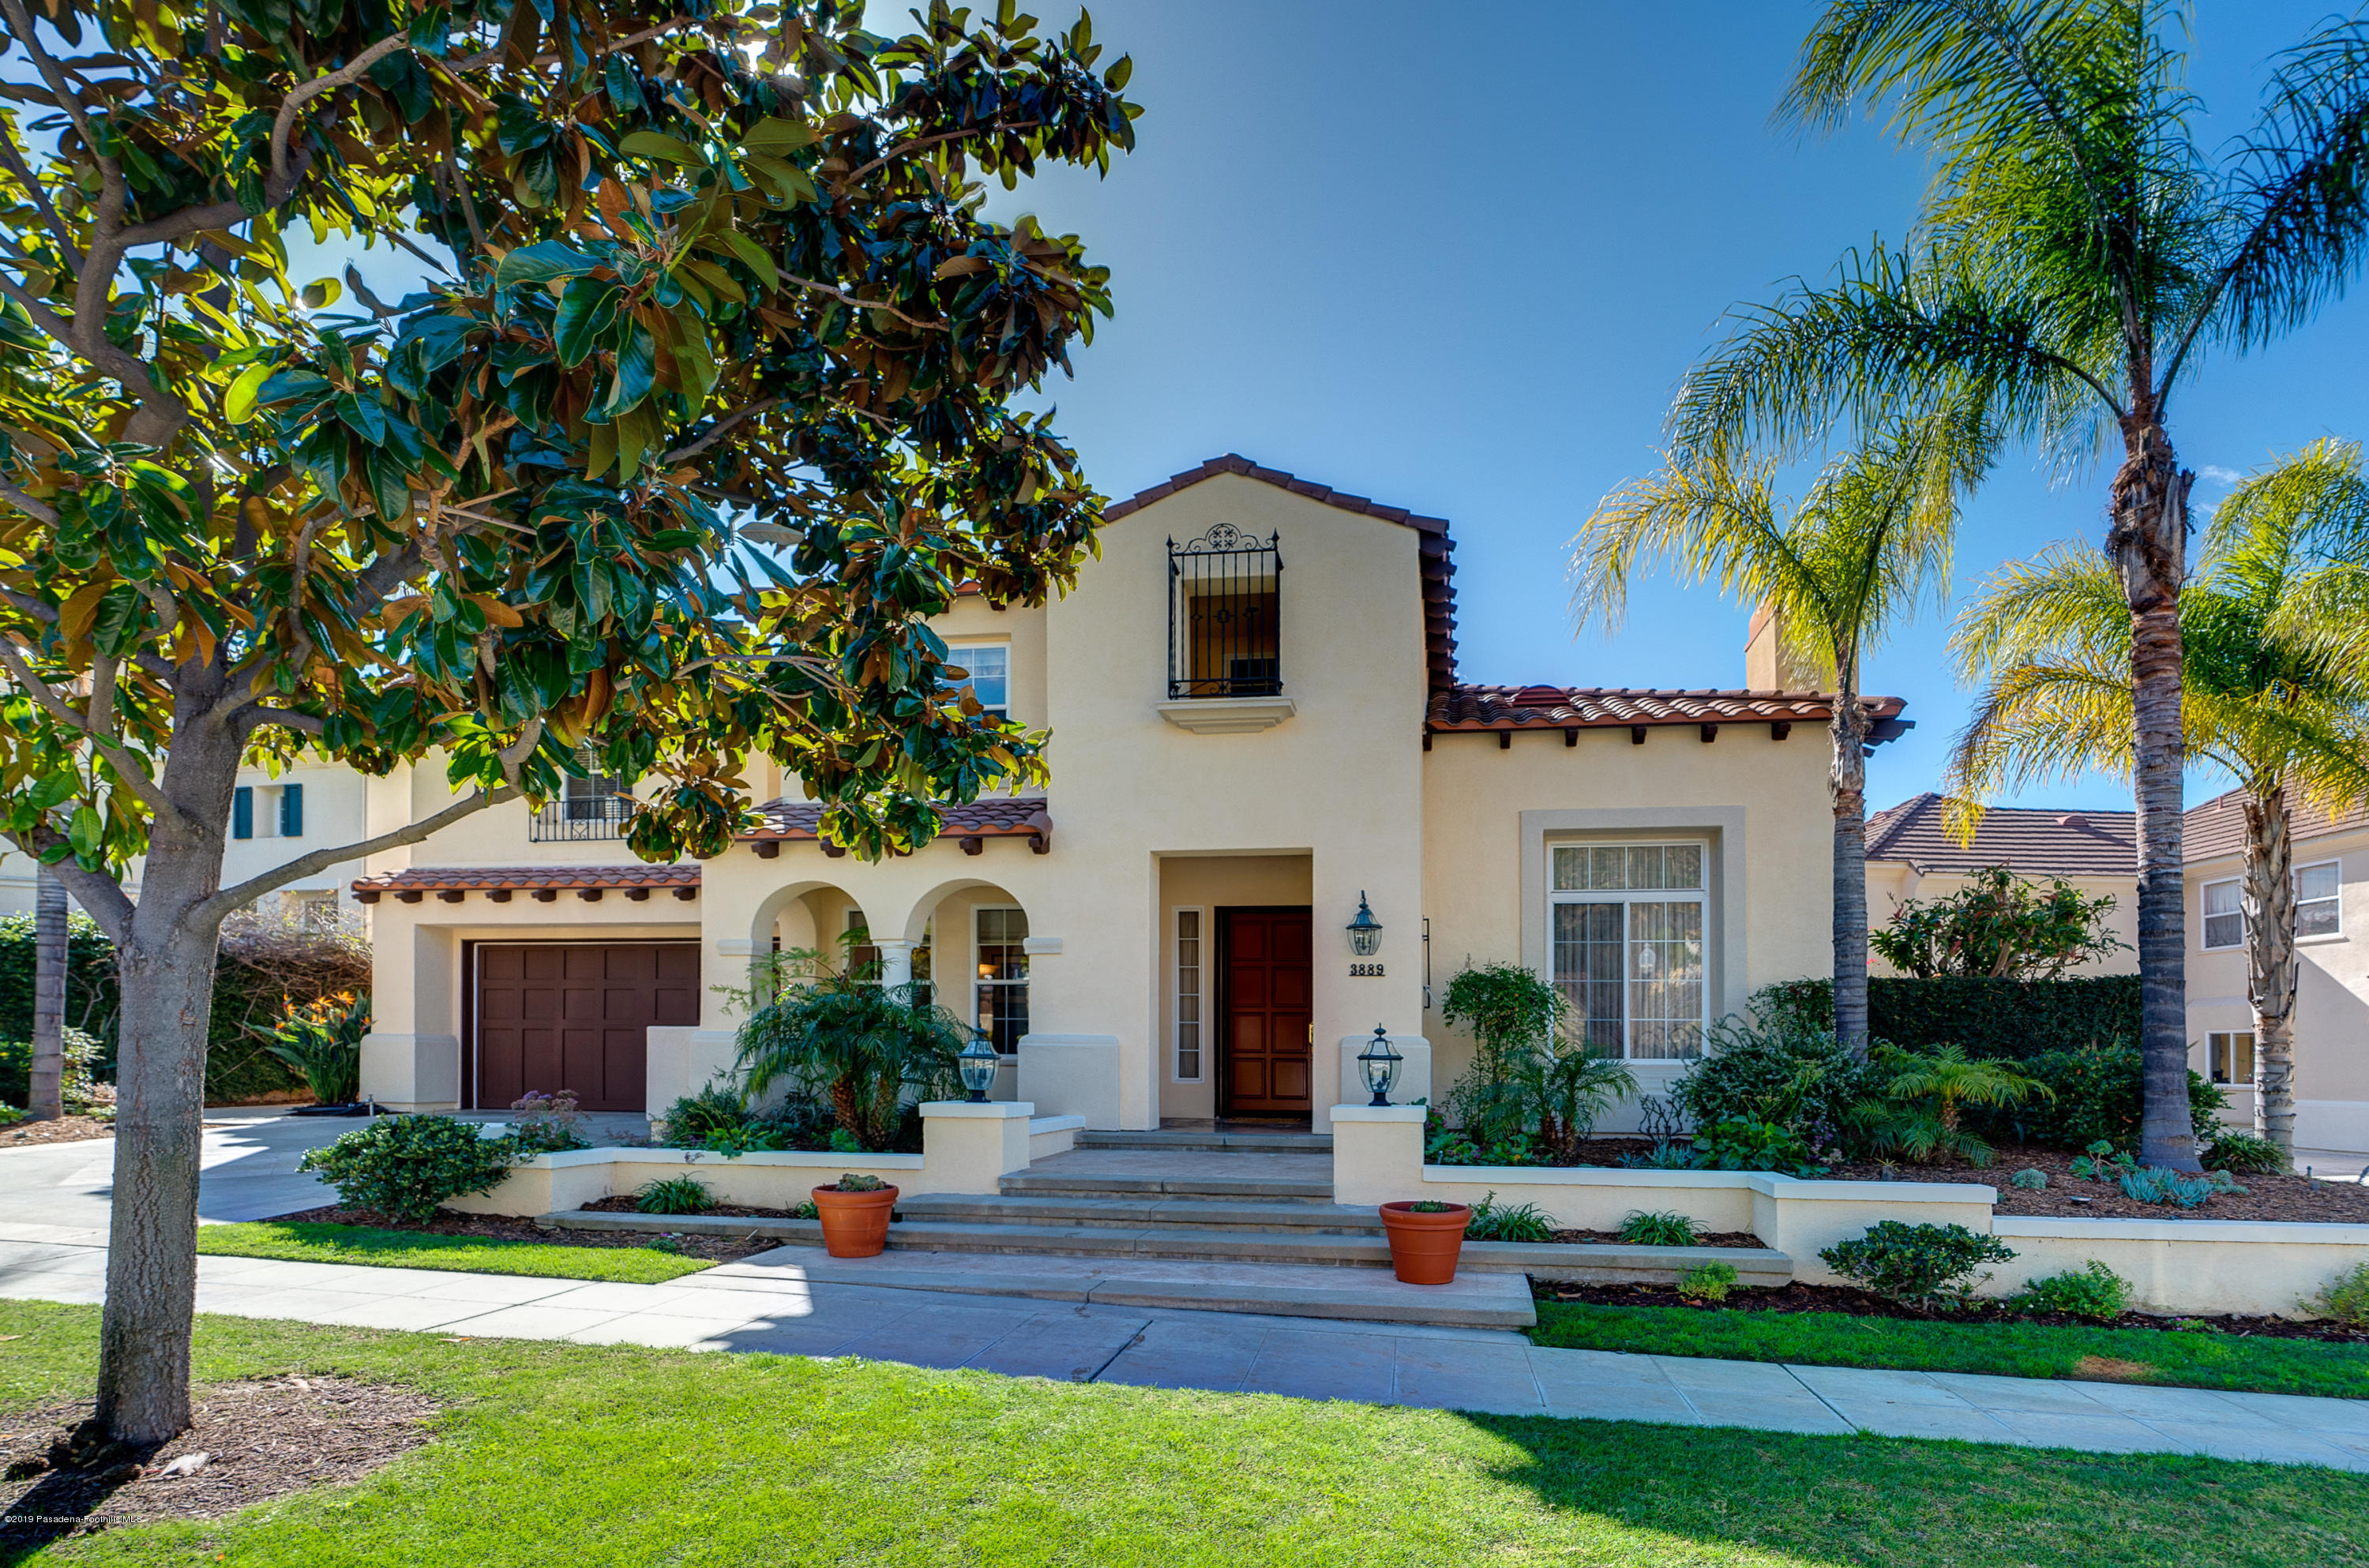 3889 Lilac Canyon Lane, Altadena in Los Angeles County, CA 91001 Home for Sale